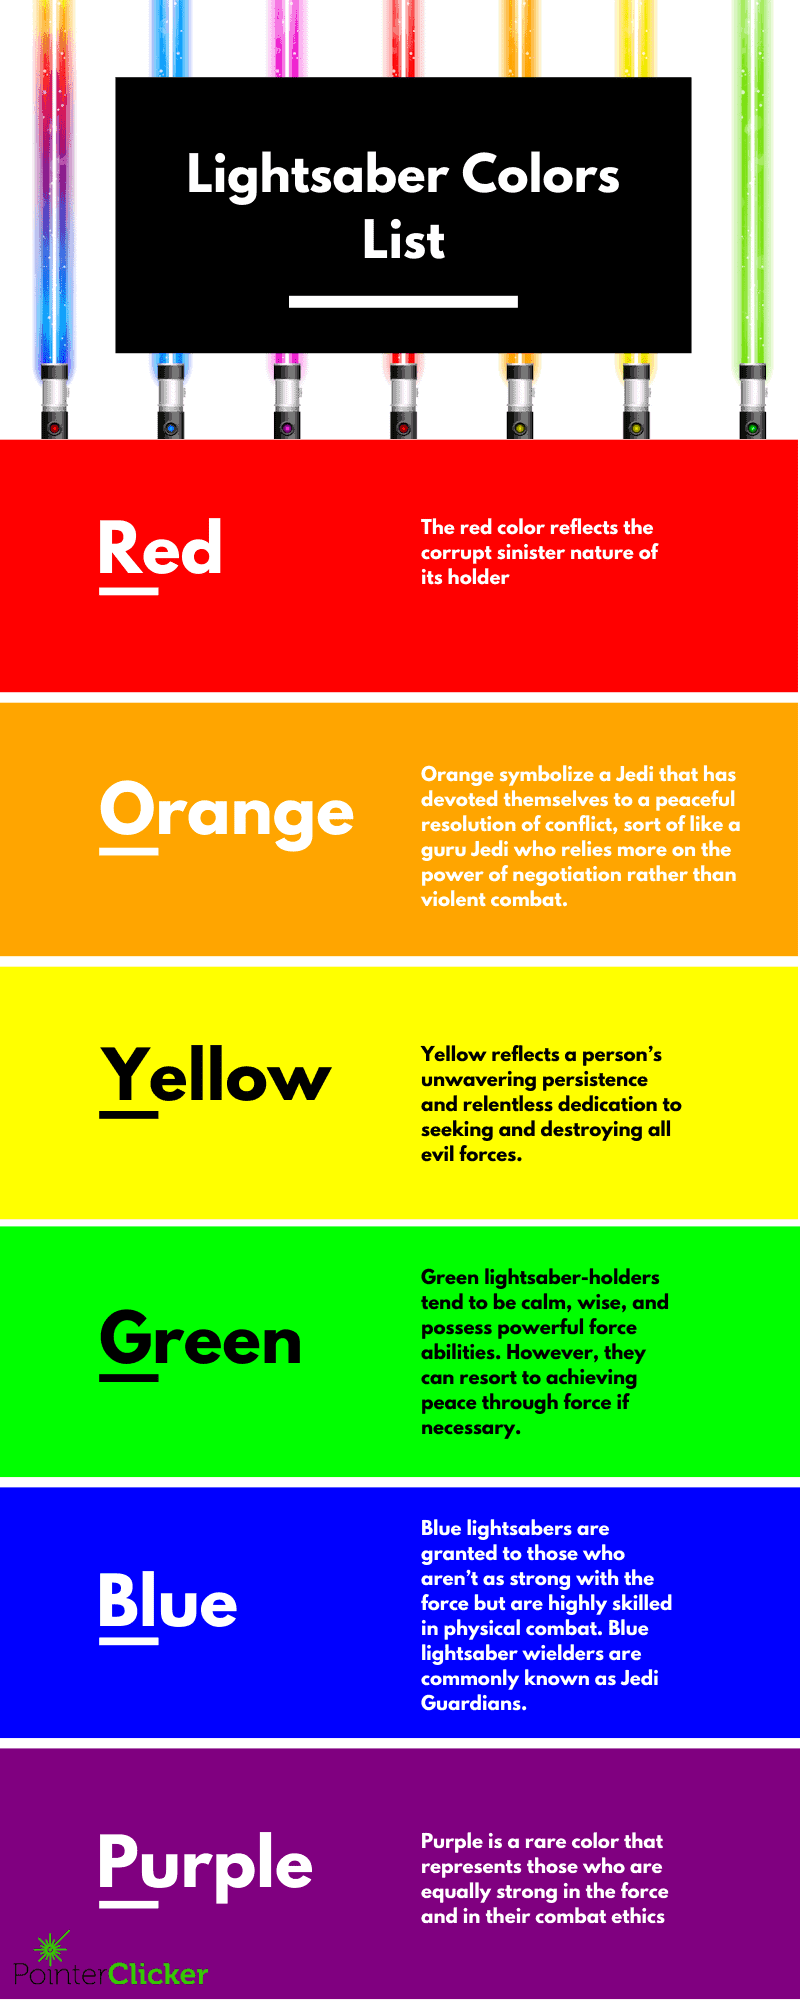 the infographic of lightsaber colors and meaning